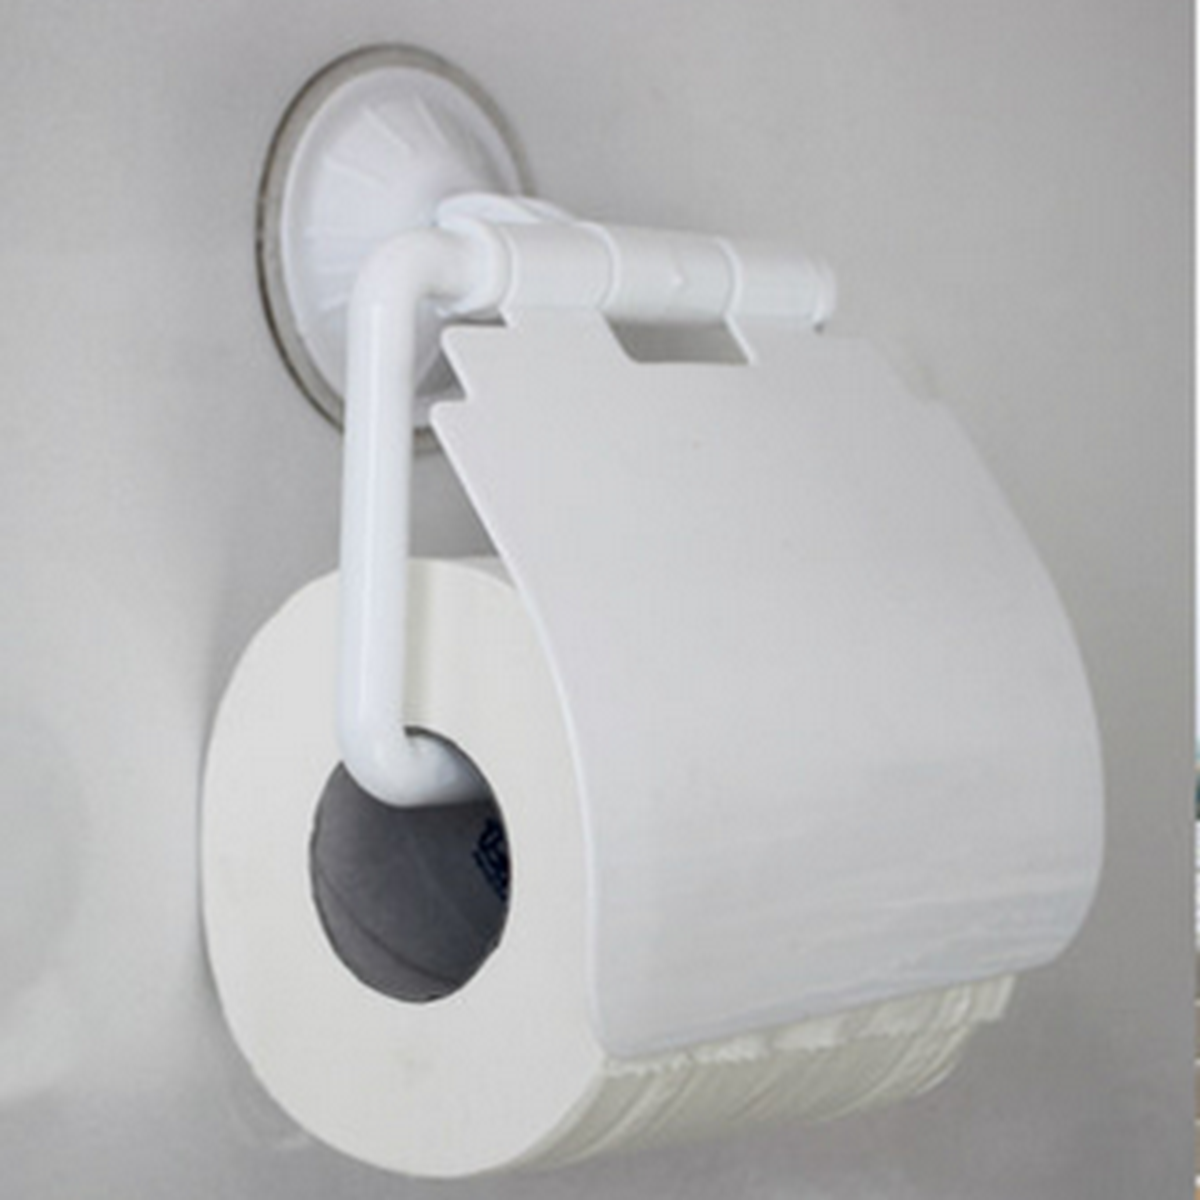 Toilet paper holder wall mounted tissue box bathroom sucker waterproof cover ebay - Tissue holder bathroom ...